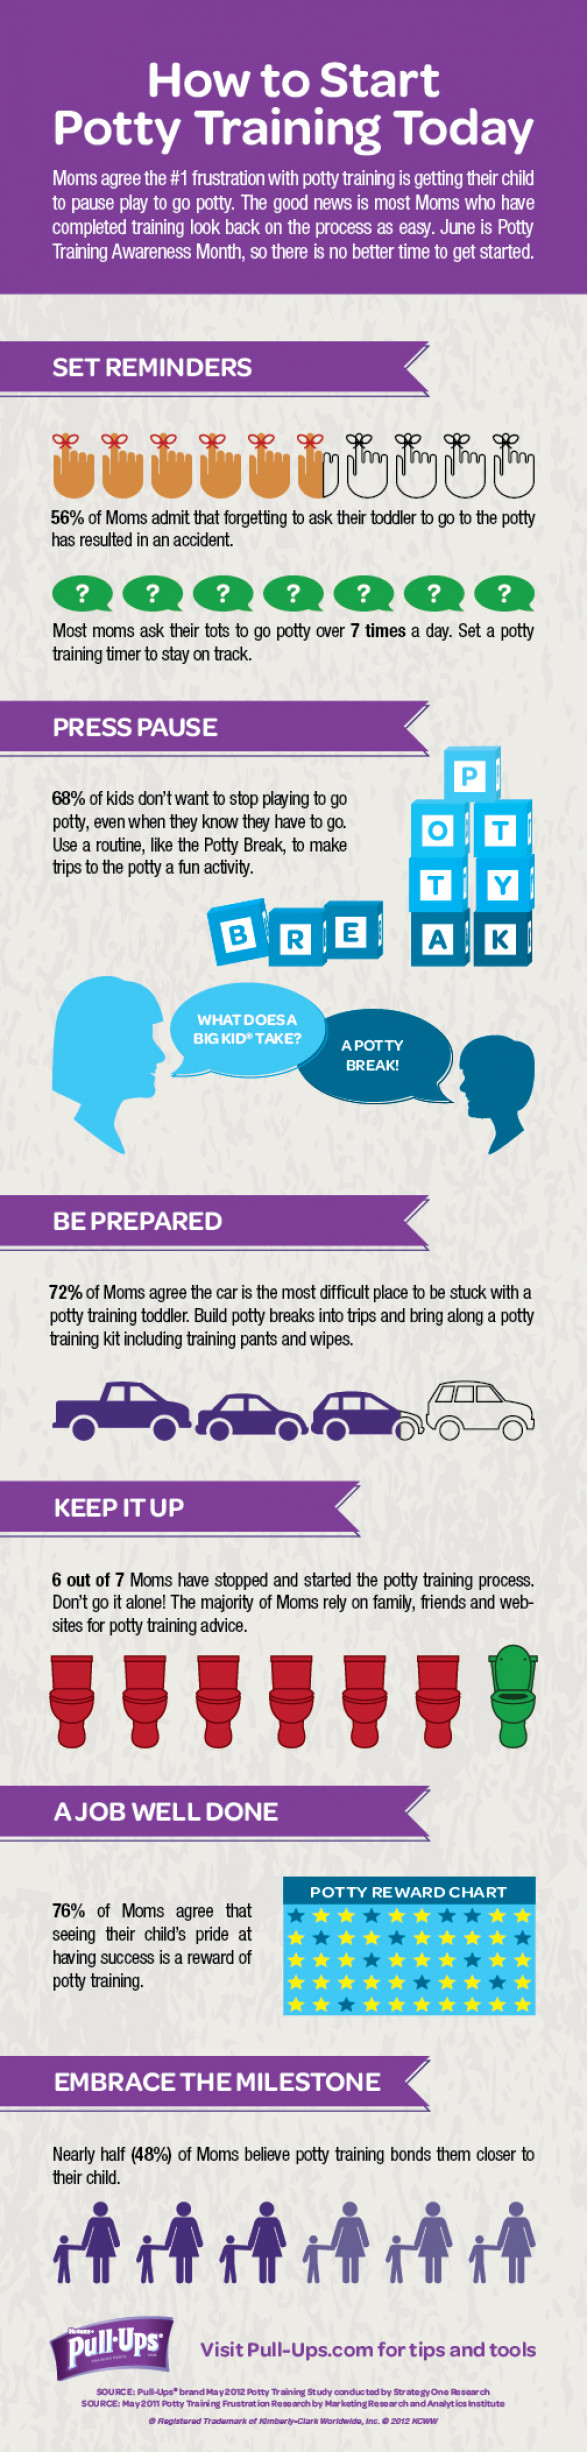 How to Start Potty Training Today – #infographic